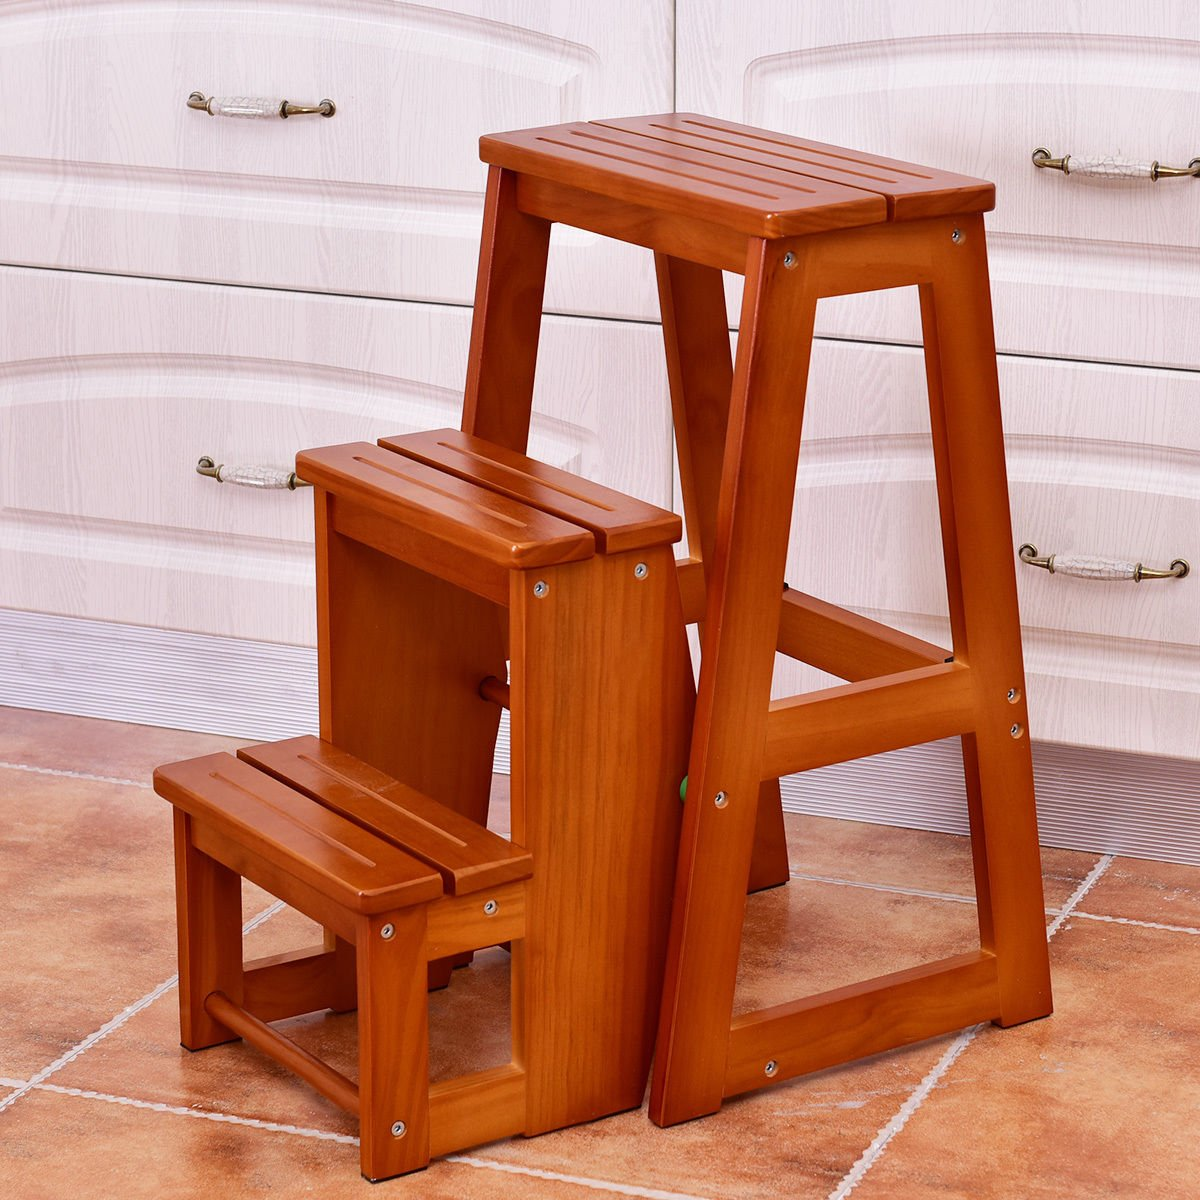 patcharaporn Wood Step Stool Folding 3 Tier Ladder Chair Bench Seat Utility Multi-functional